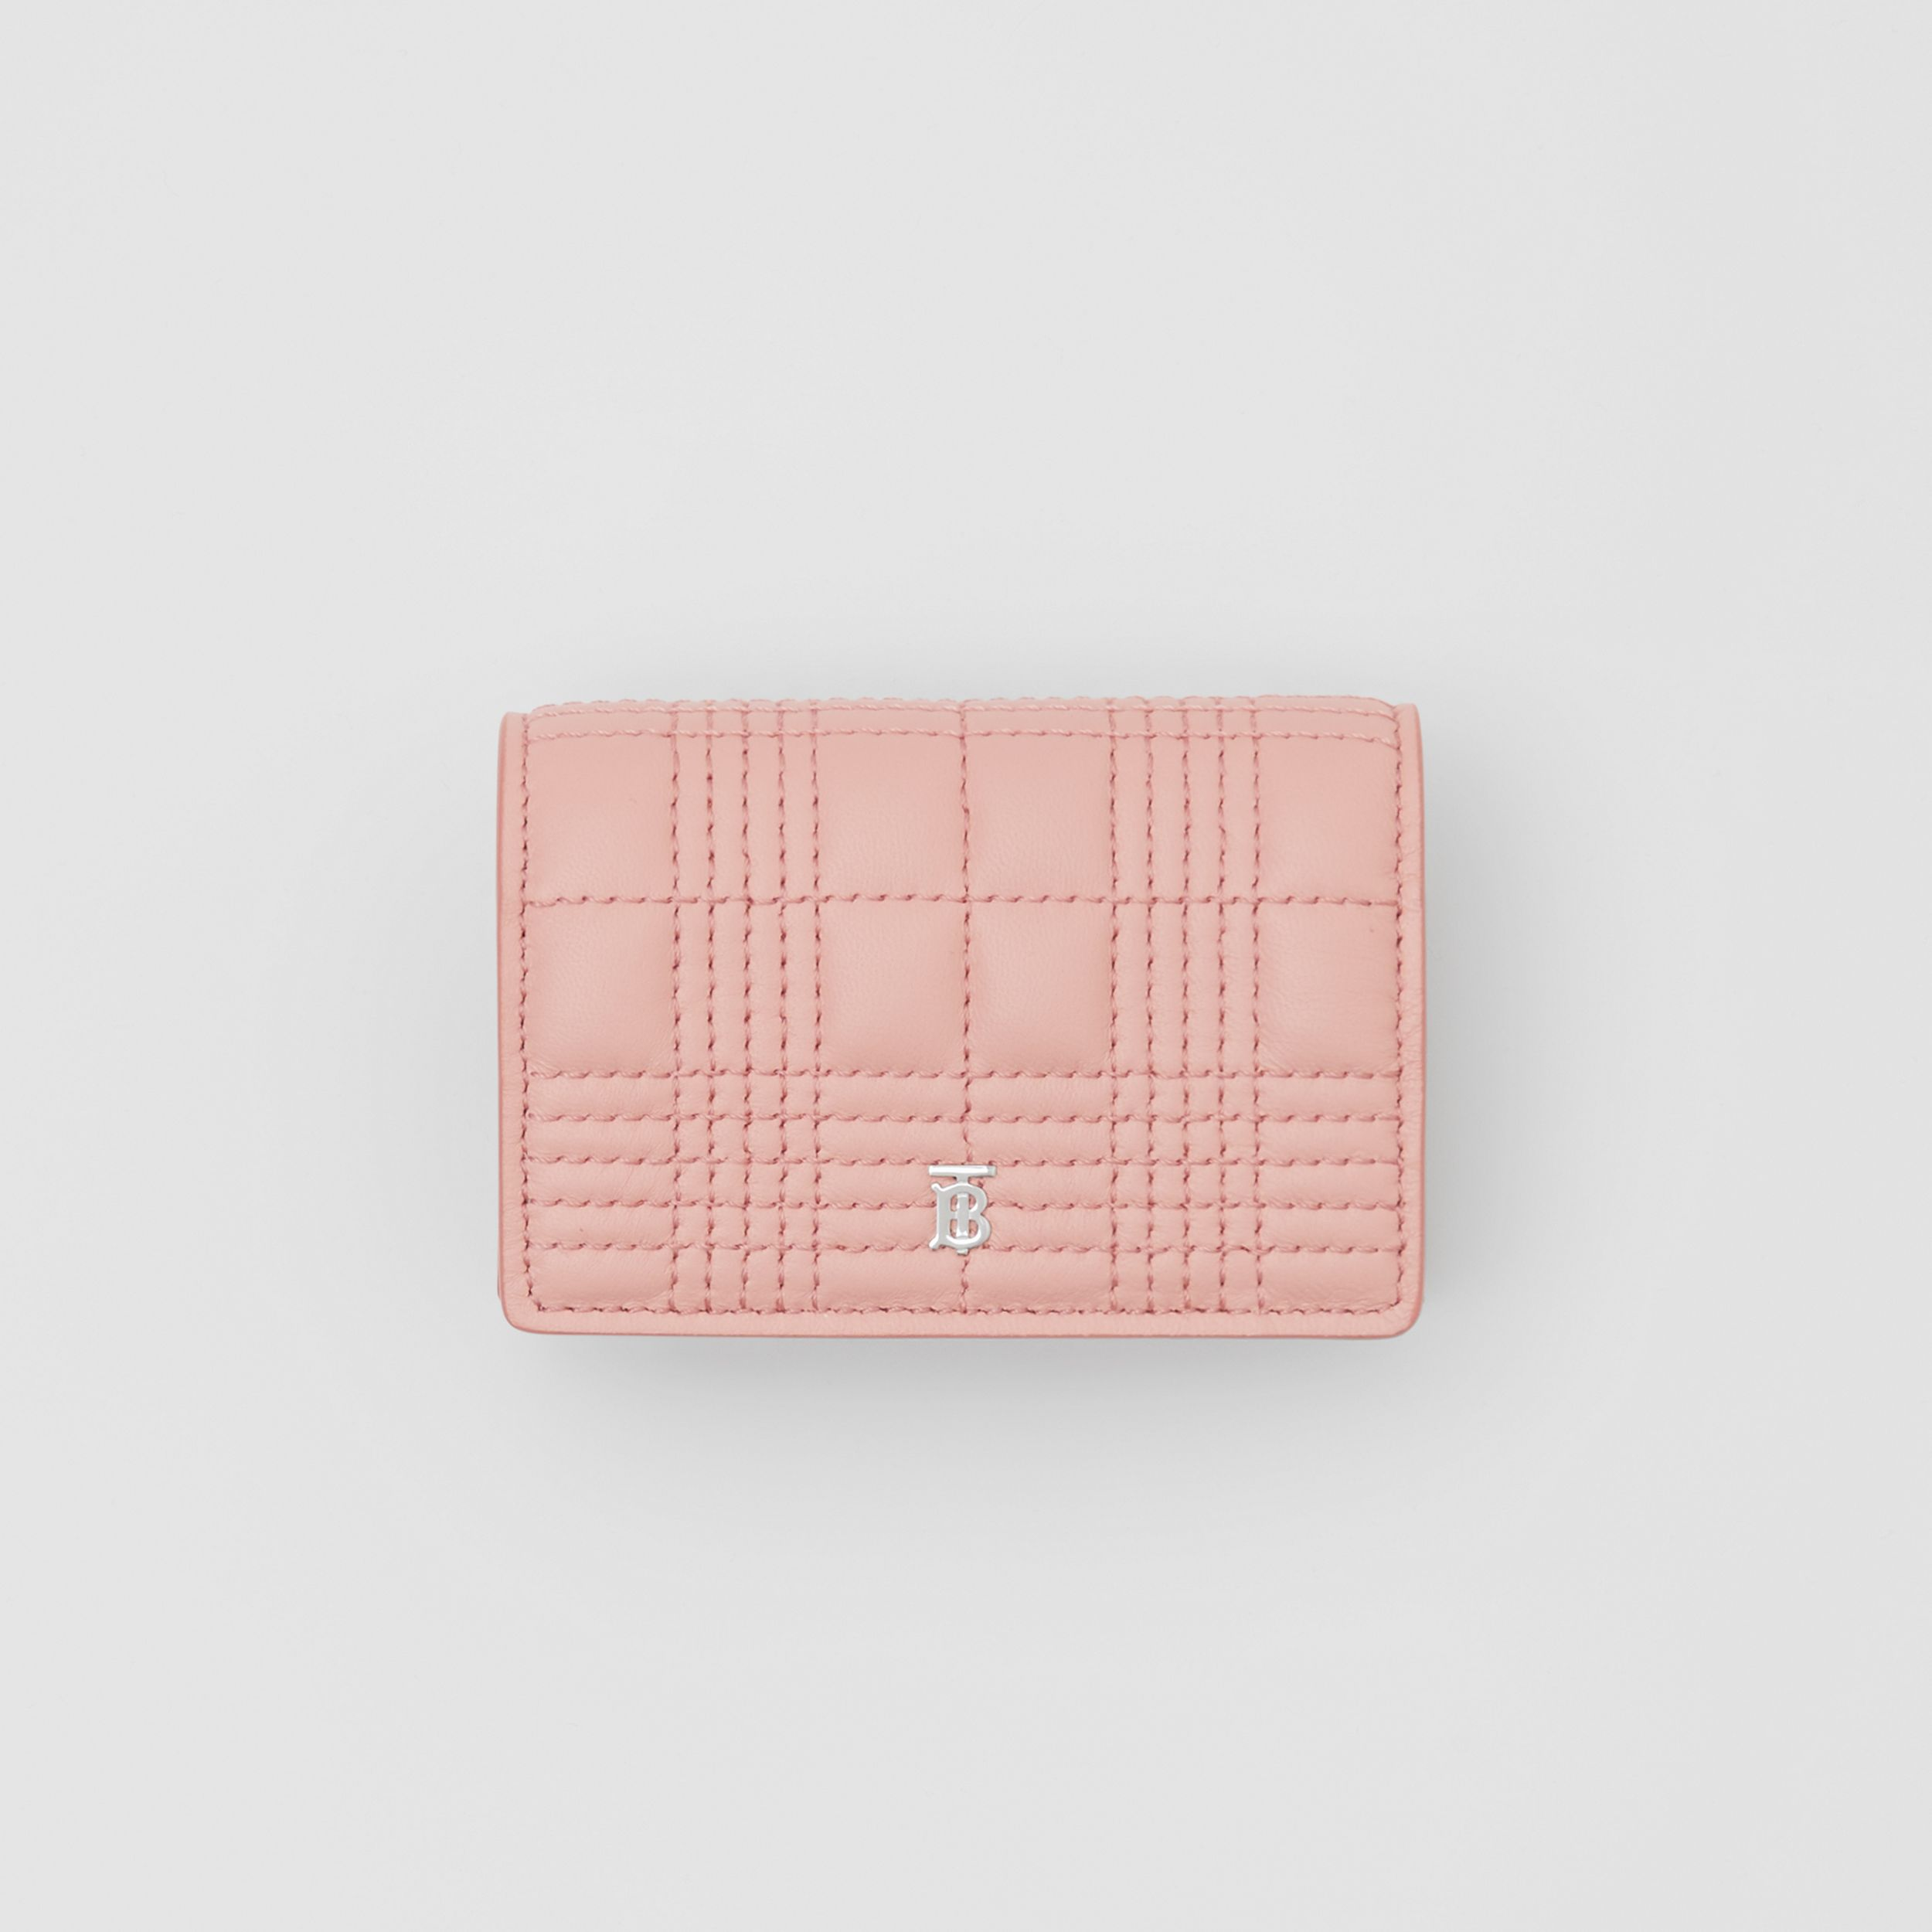 Quilted Lambskin Card Case with Detachable Strap in Blush Pink - Women | Burberry - 4